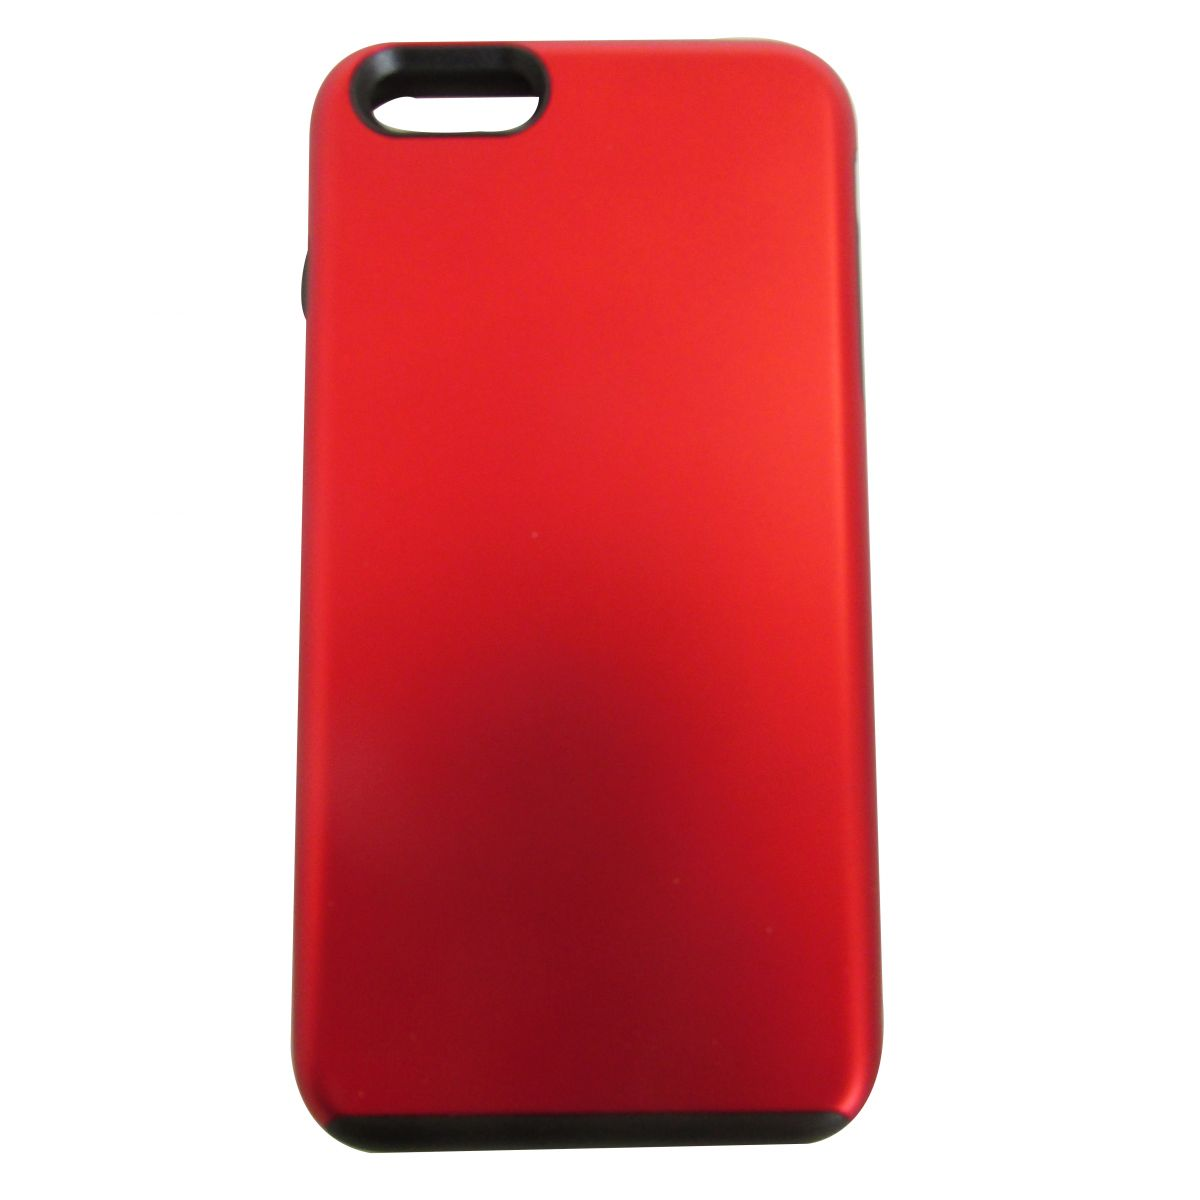 Capa Impacto Duo Para Iphone 6 Plus Intelimix Vermelha